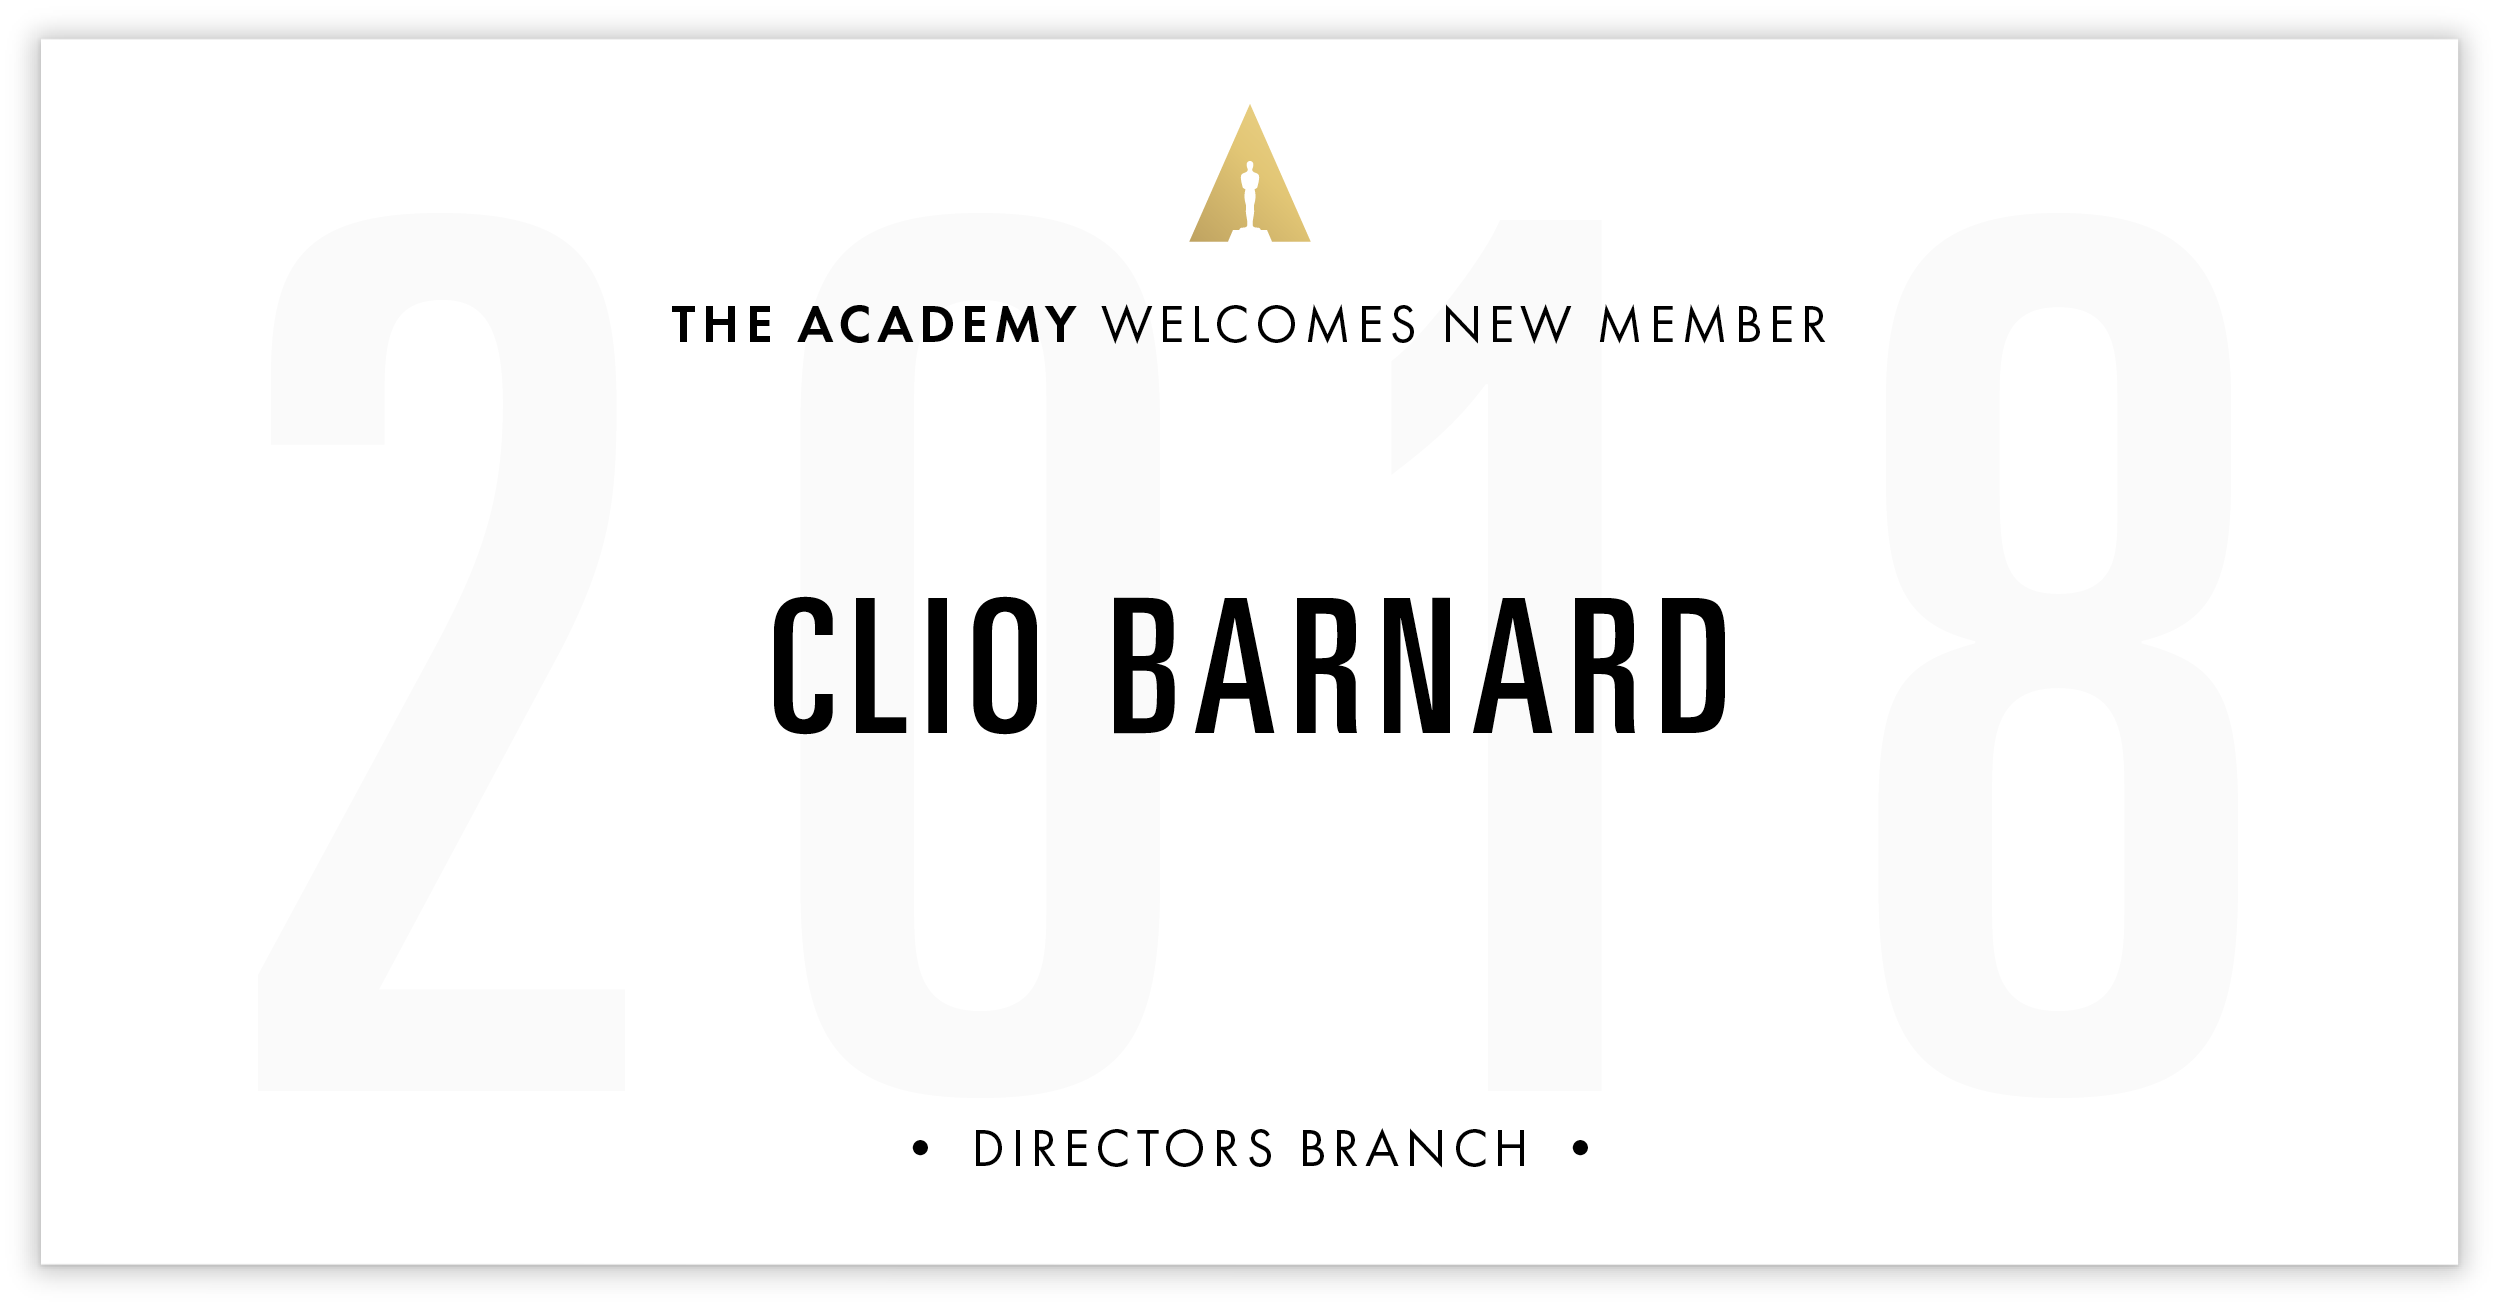 Clio Barnard is invited!